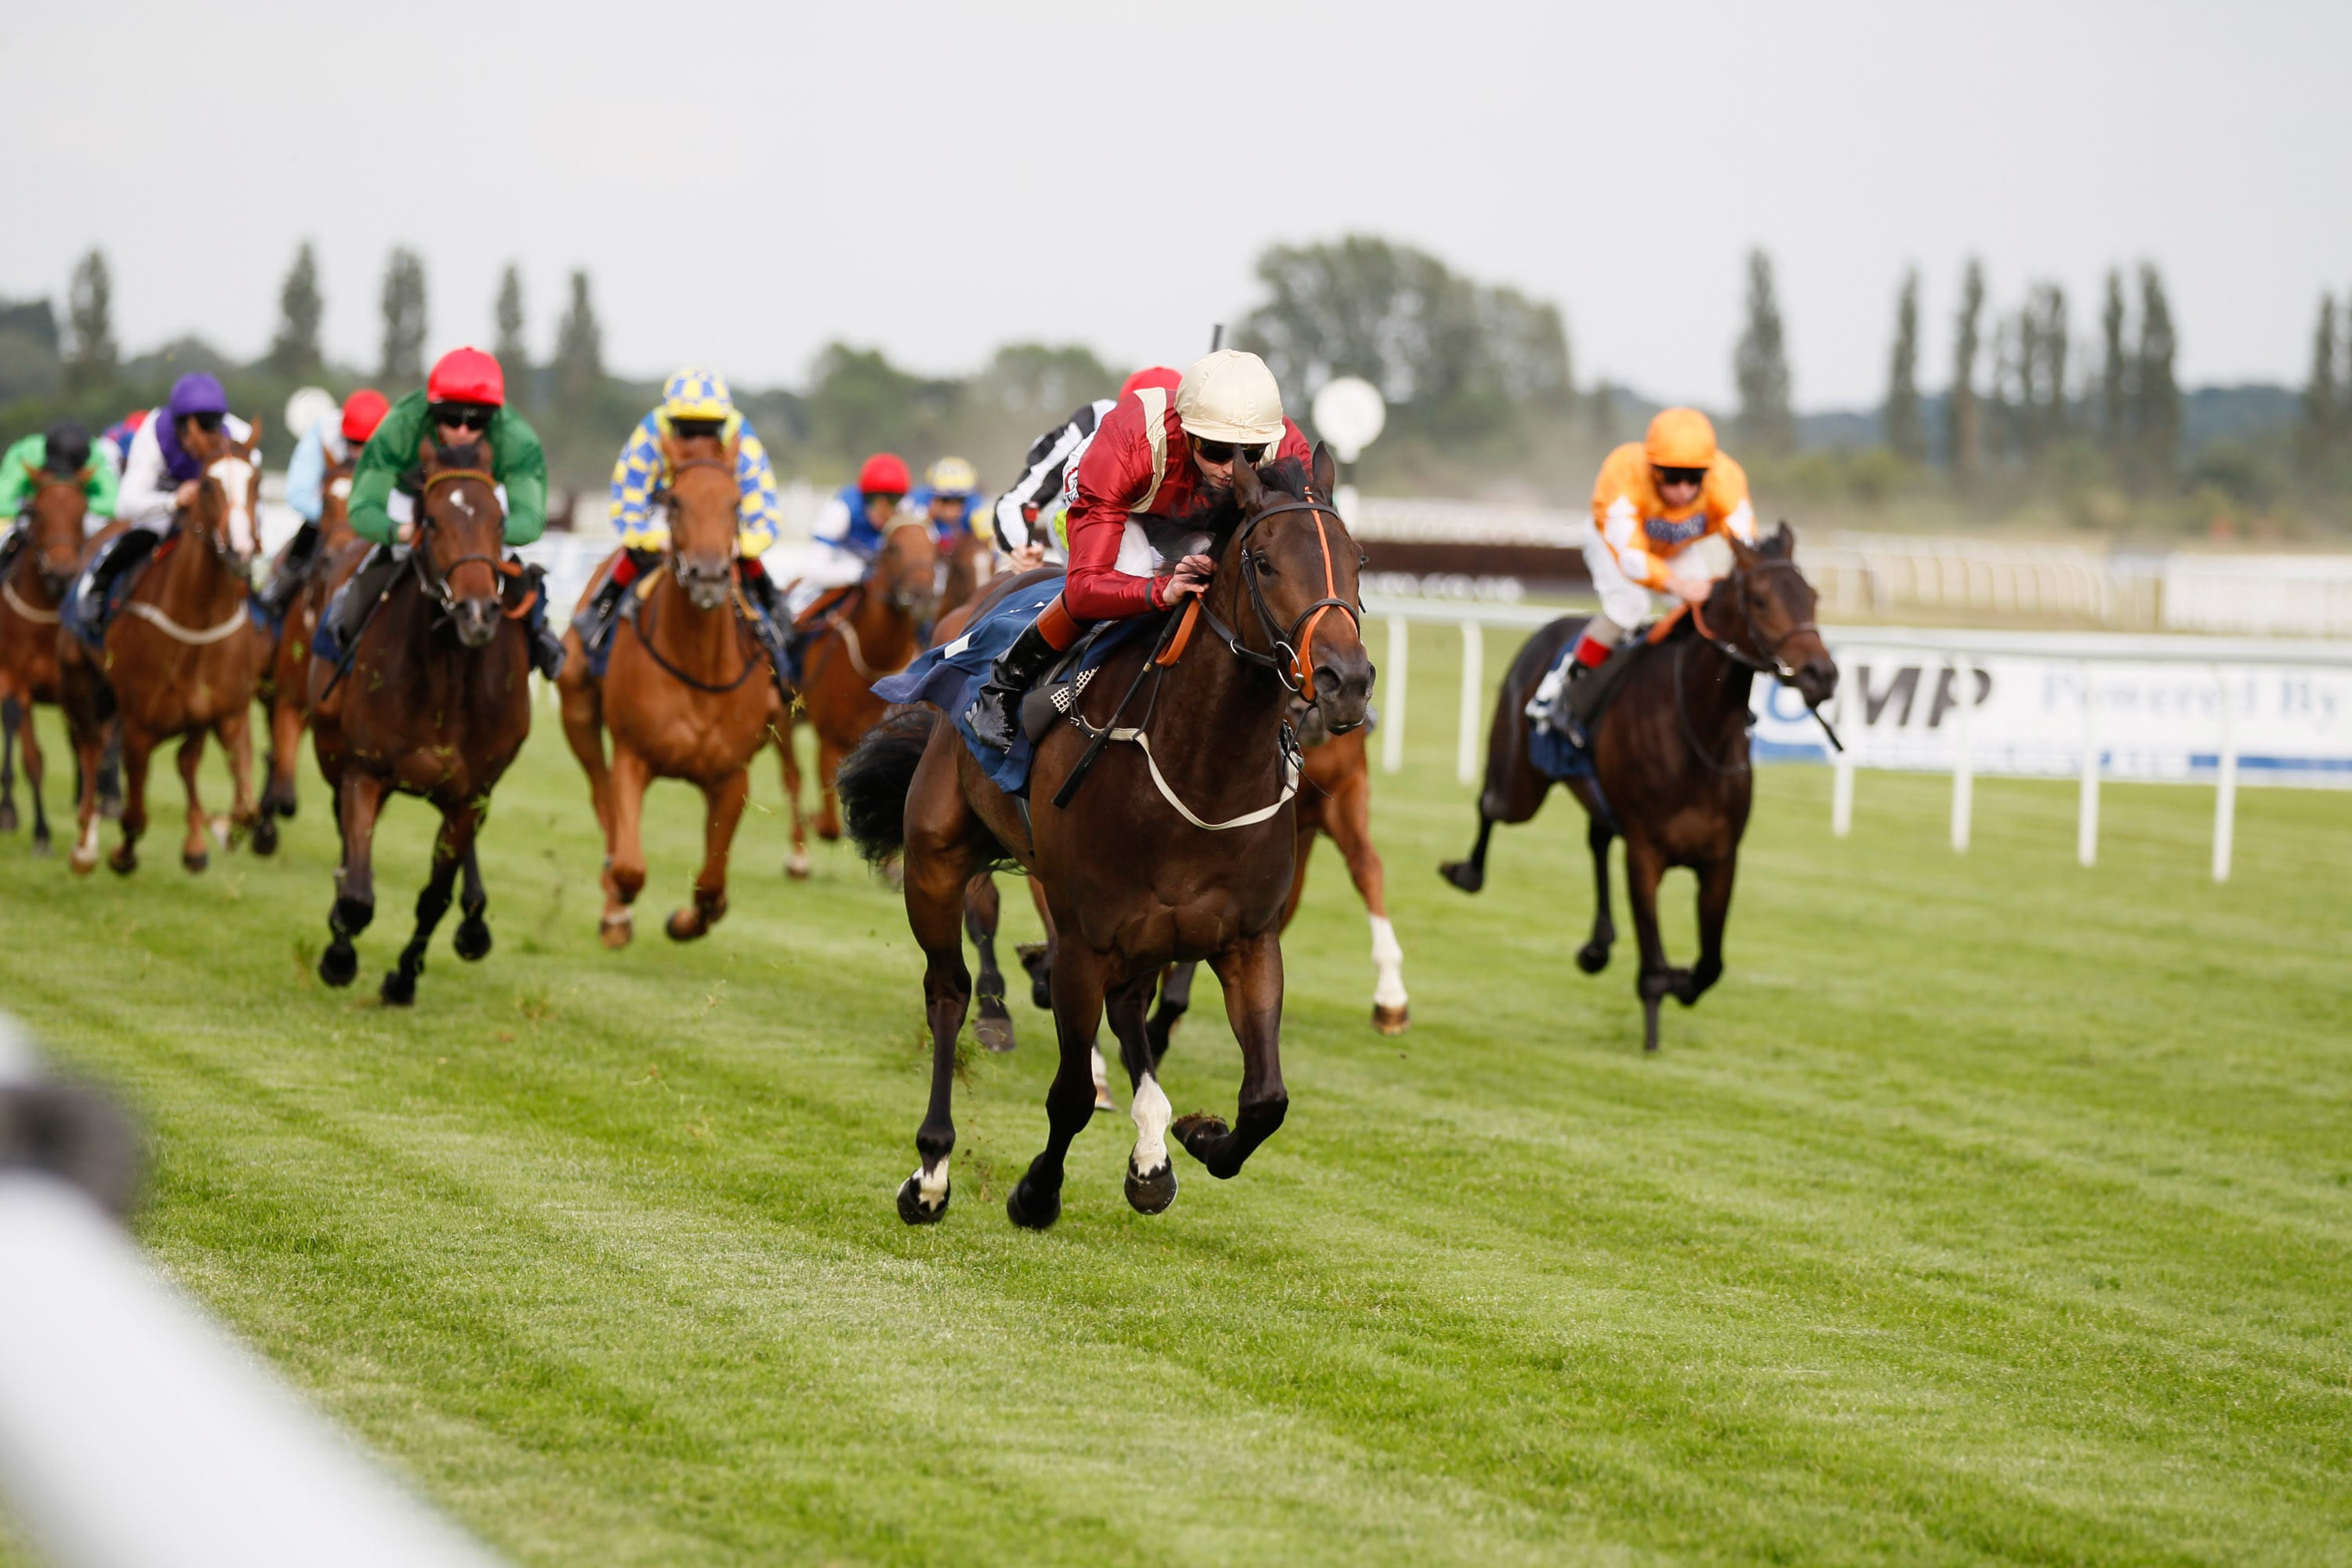 Kendal Mint winning at Newbury in 2013